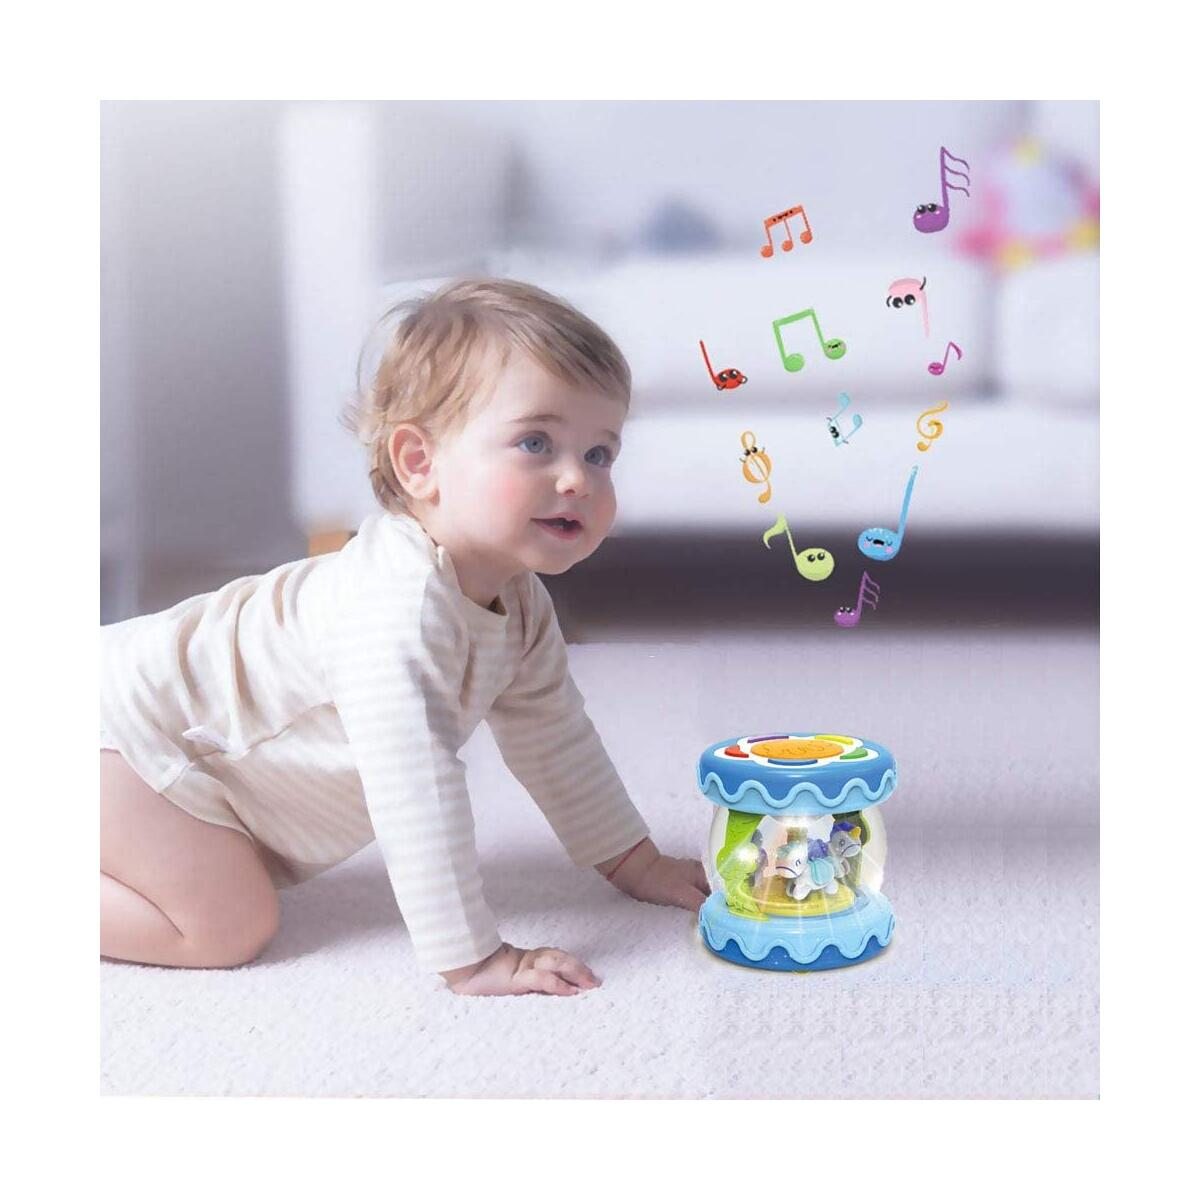 WISHTIME Baby Musical Mini Drum Toy - Educational Learning Toy for Baby Electronic Drum Instruments with Lights for 1 2 3 Year Old Toddlers Kids Boys and Girls Blue